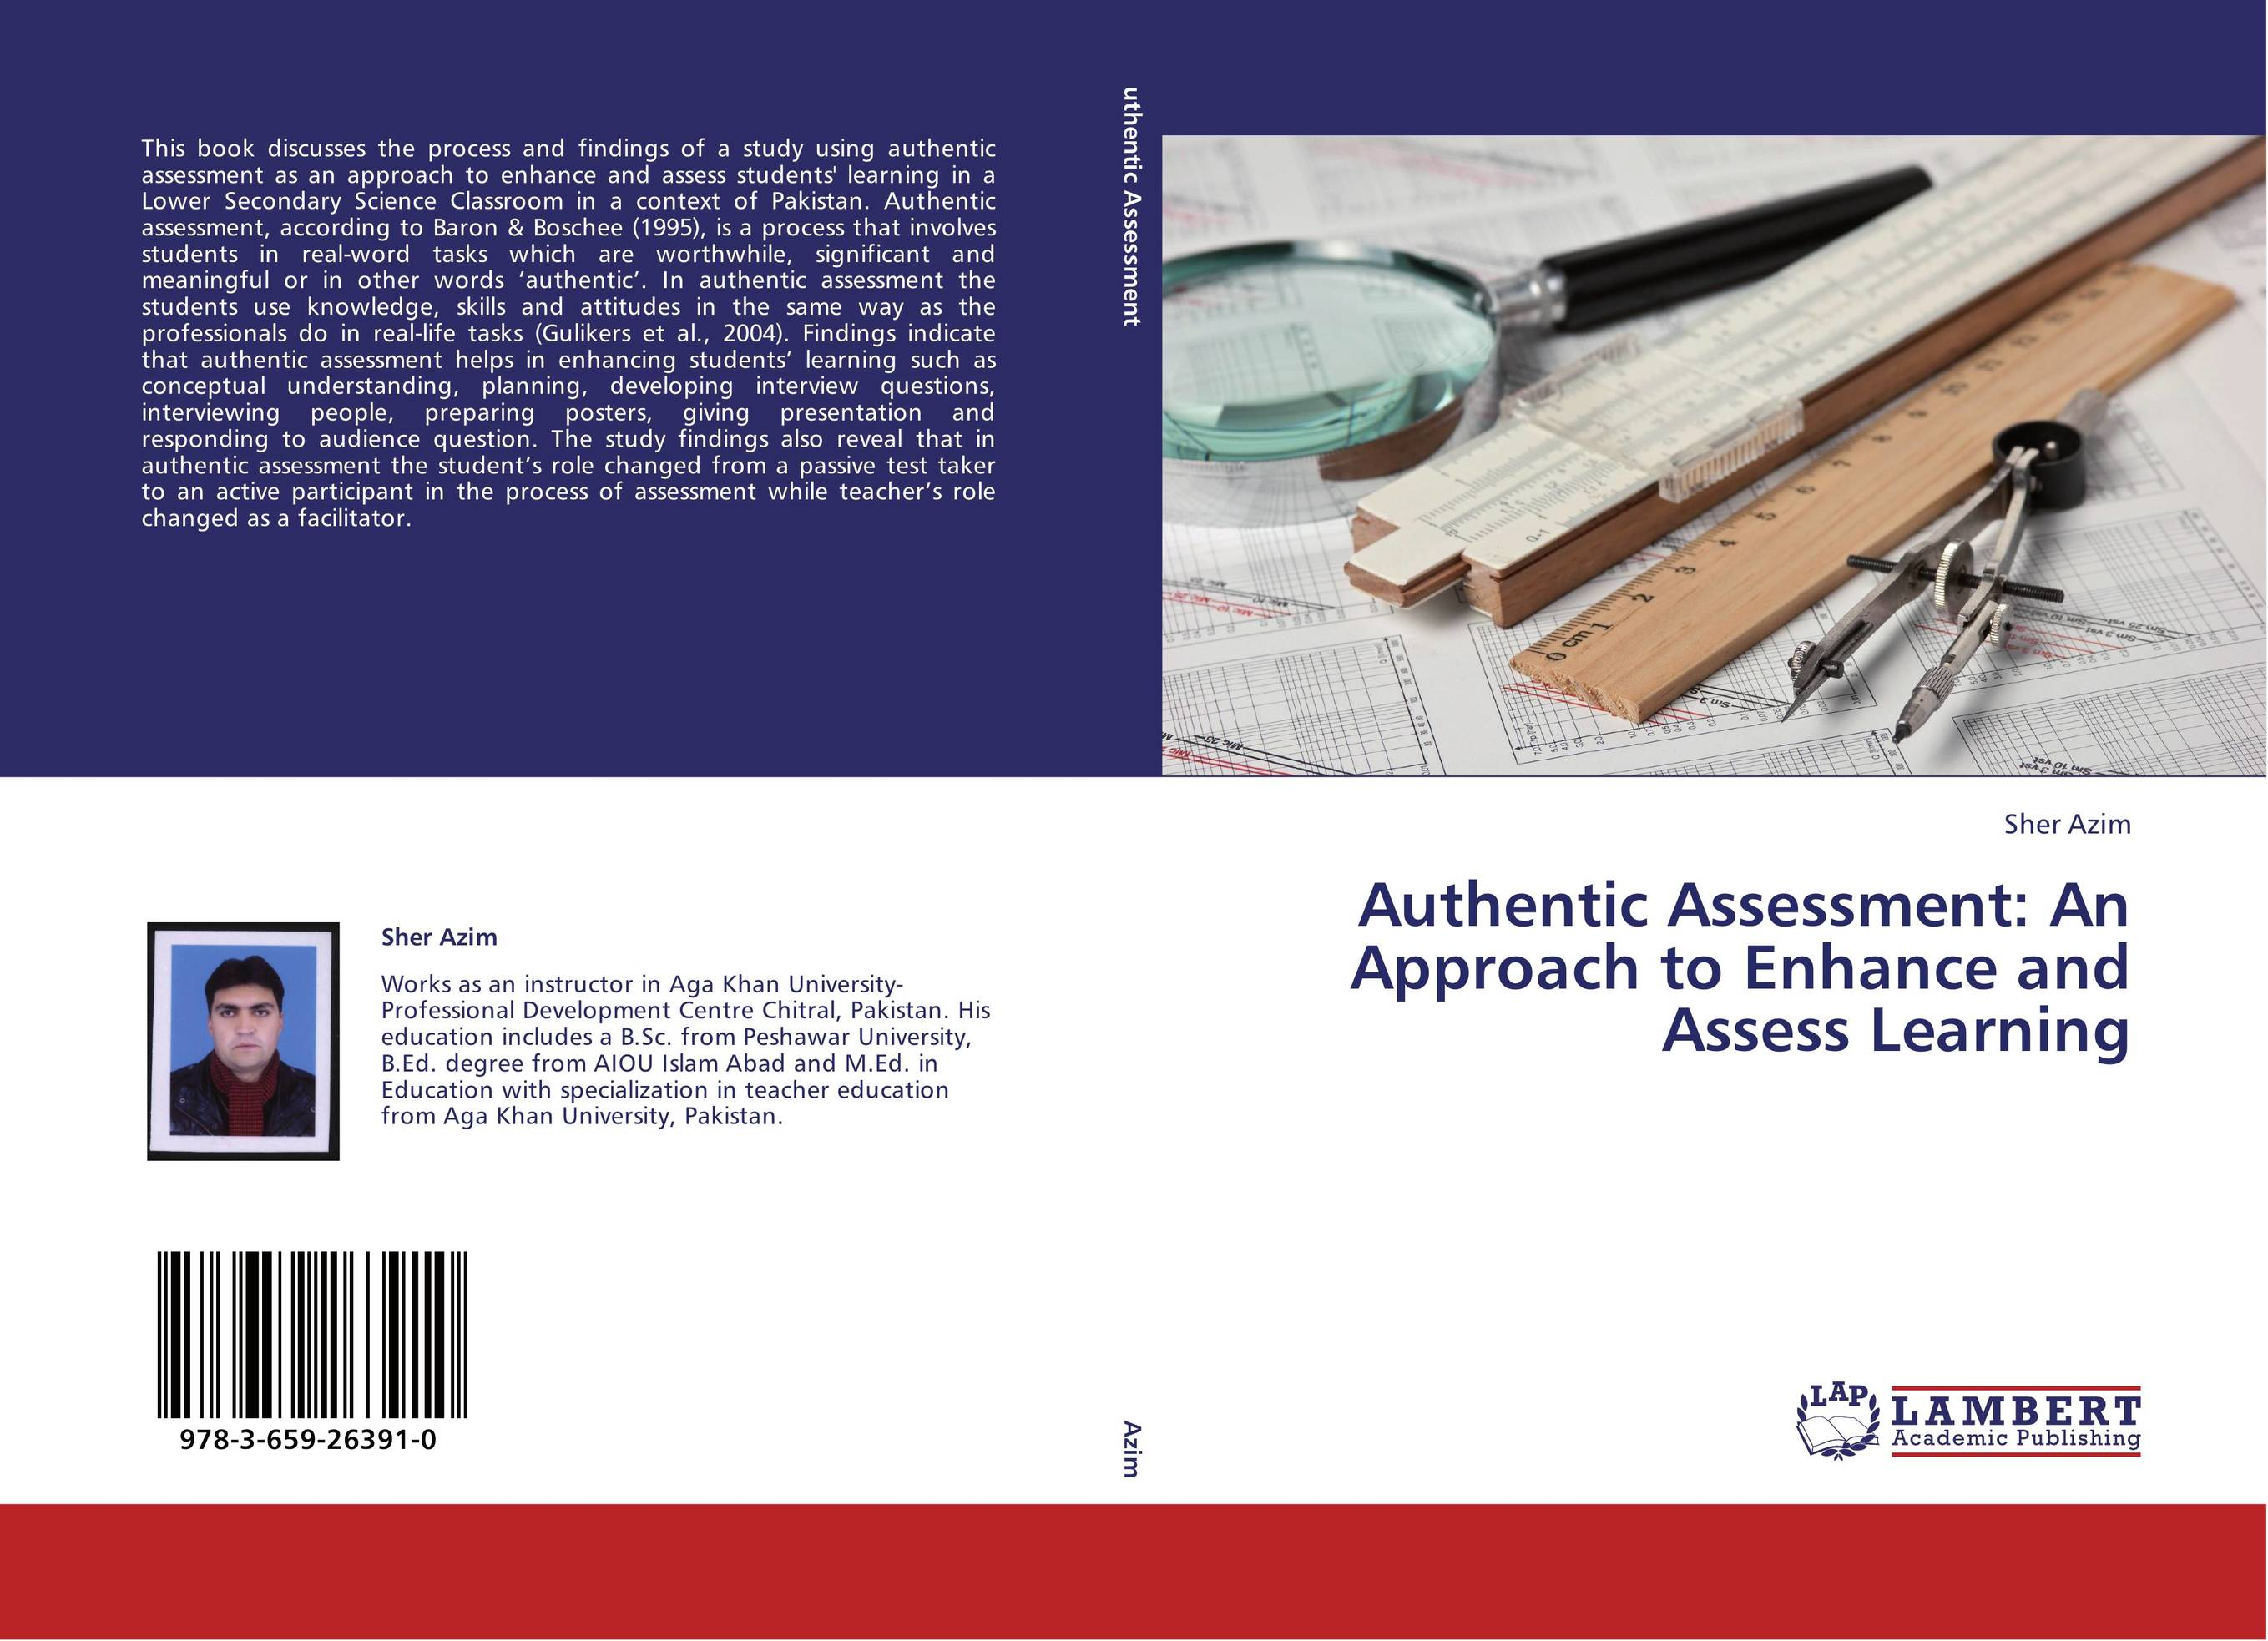 9783659263910 Authentic Assessment An Approach to Enhance and Asess Learning